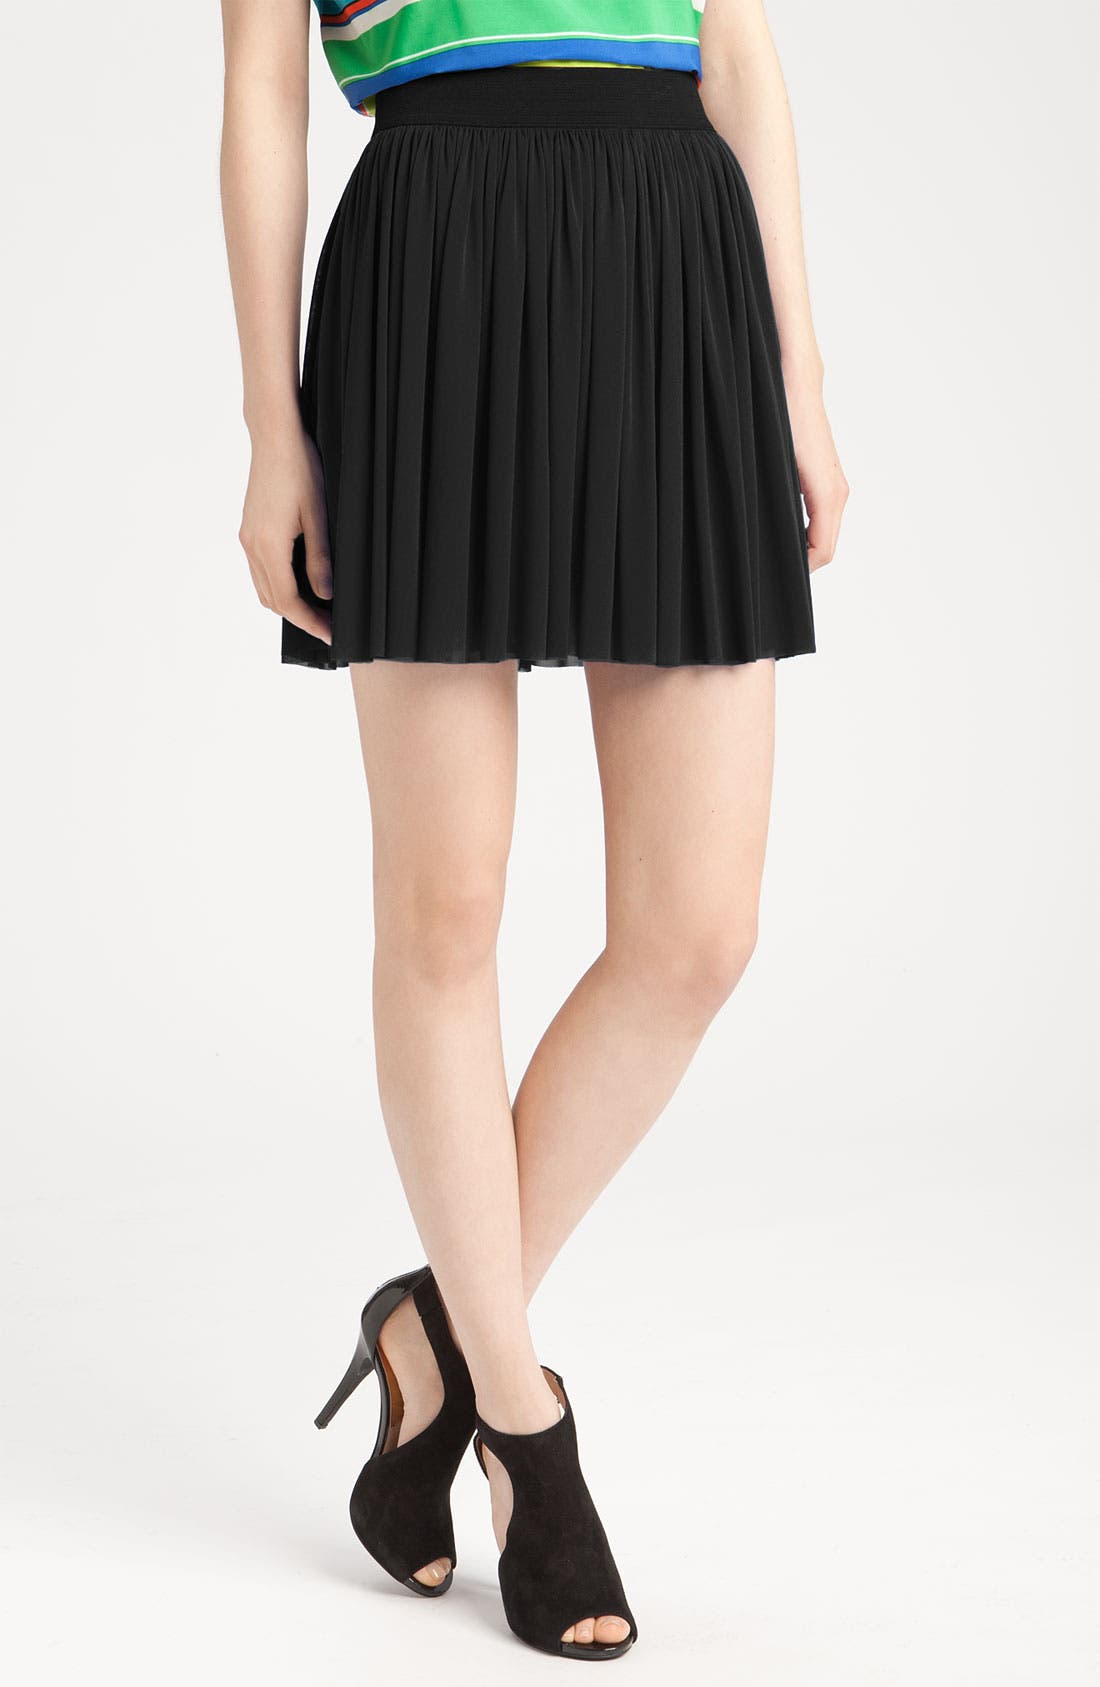 Alternate Image 1 Selected - Vince Camuto Mesh Skirt with Elastic Waistband